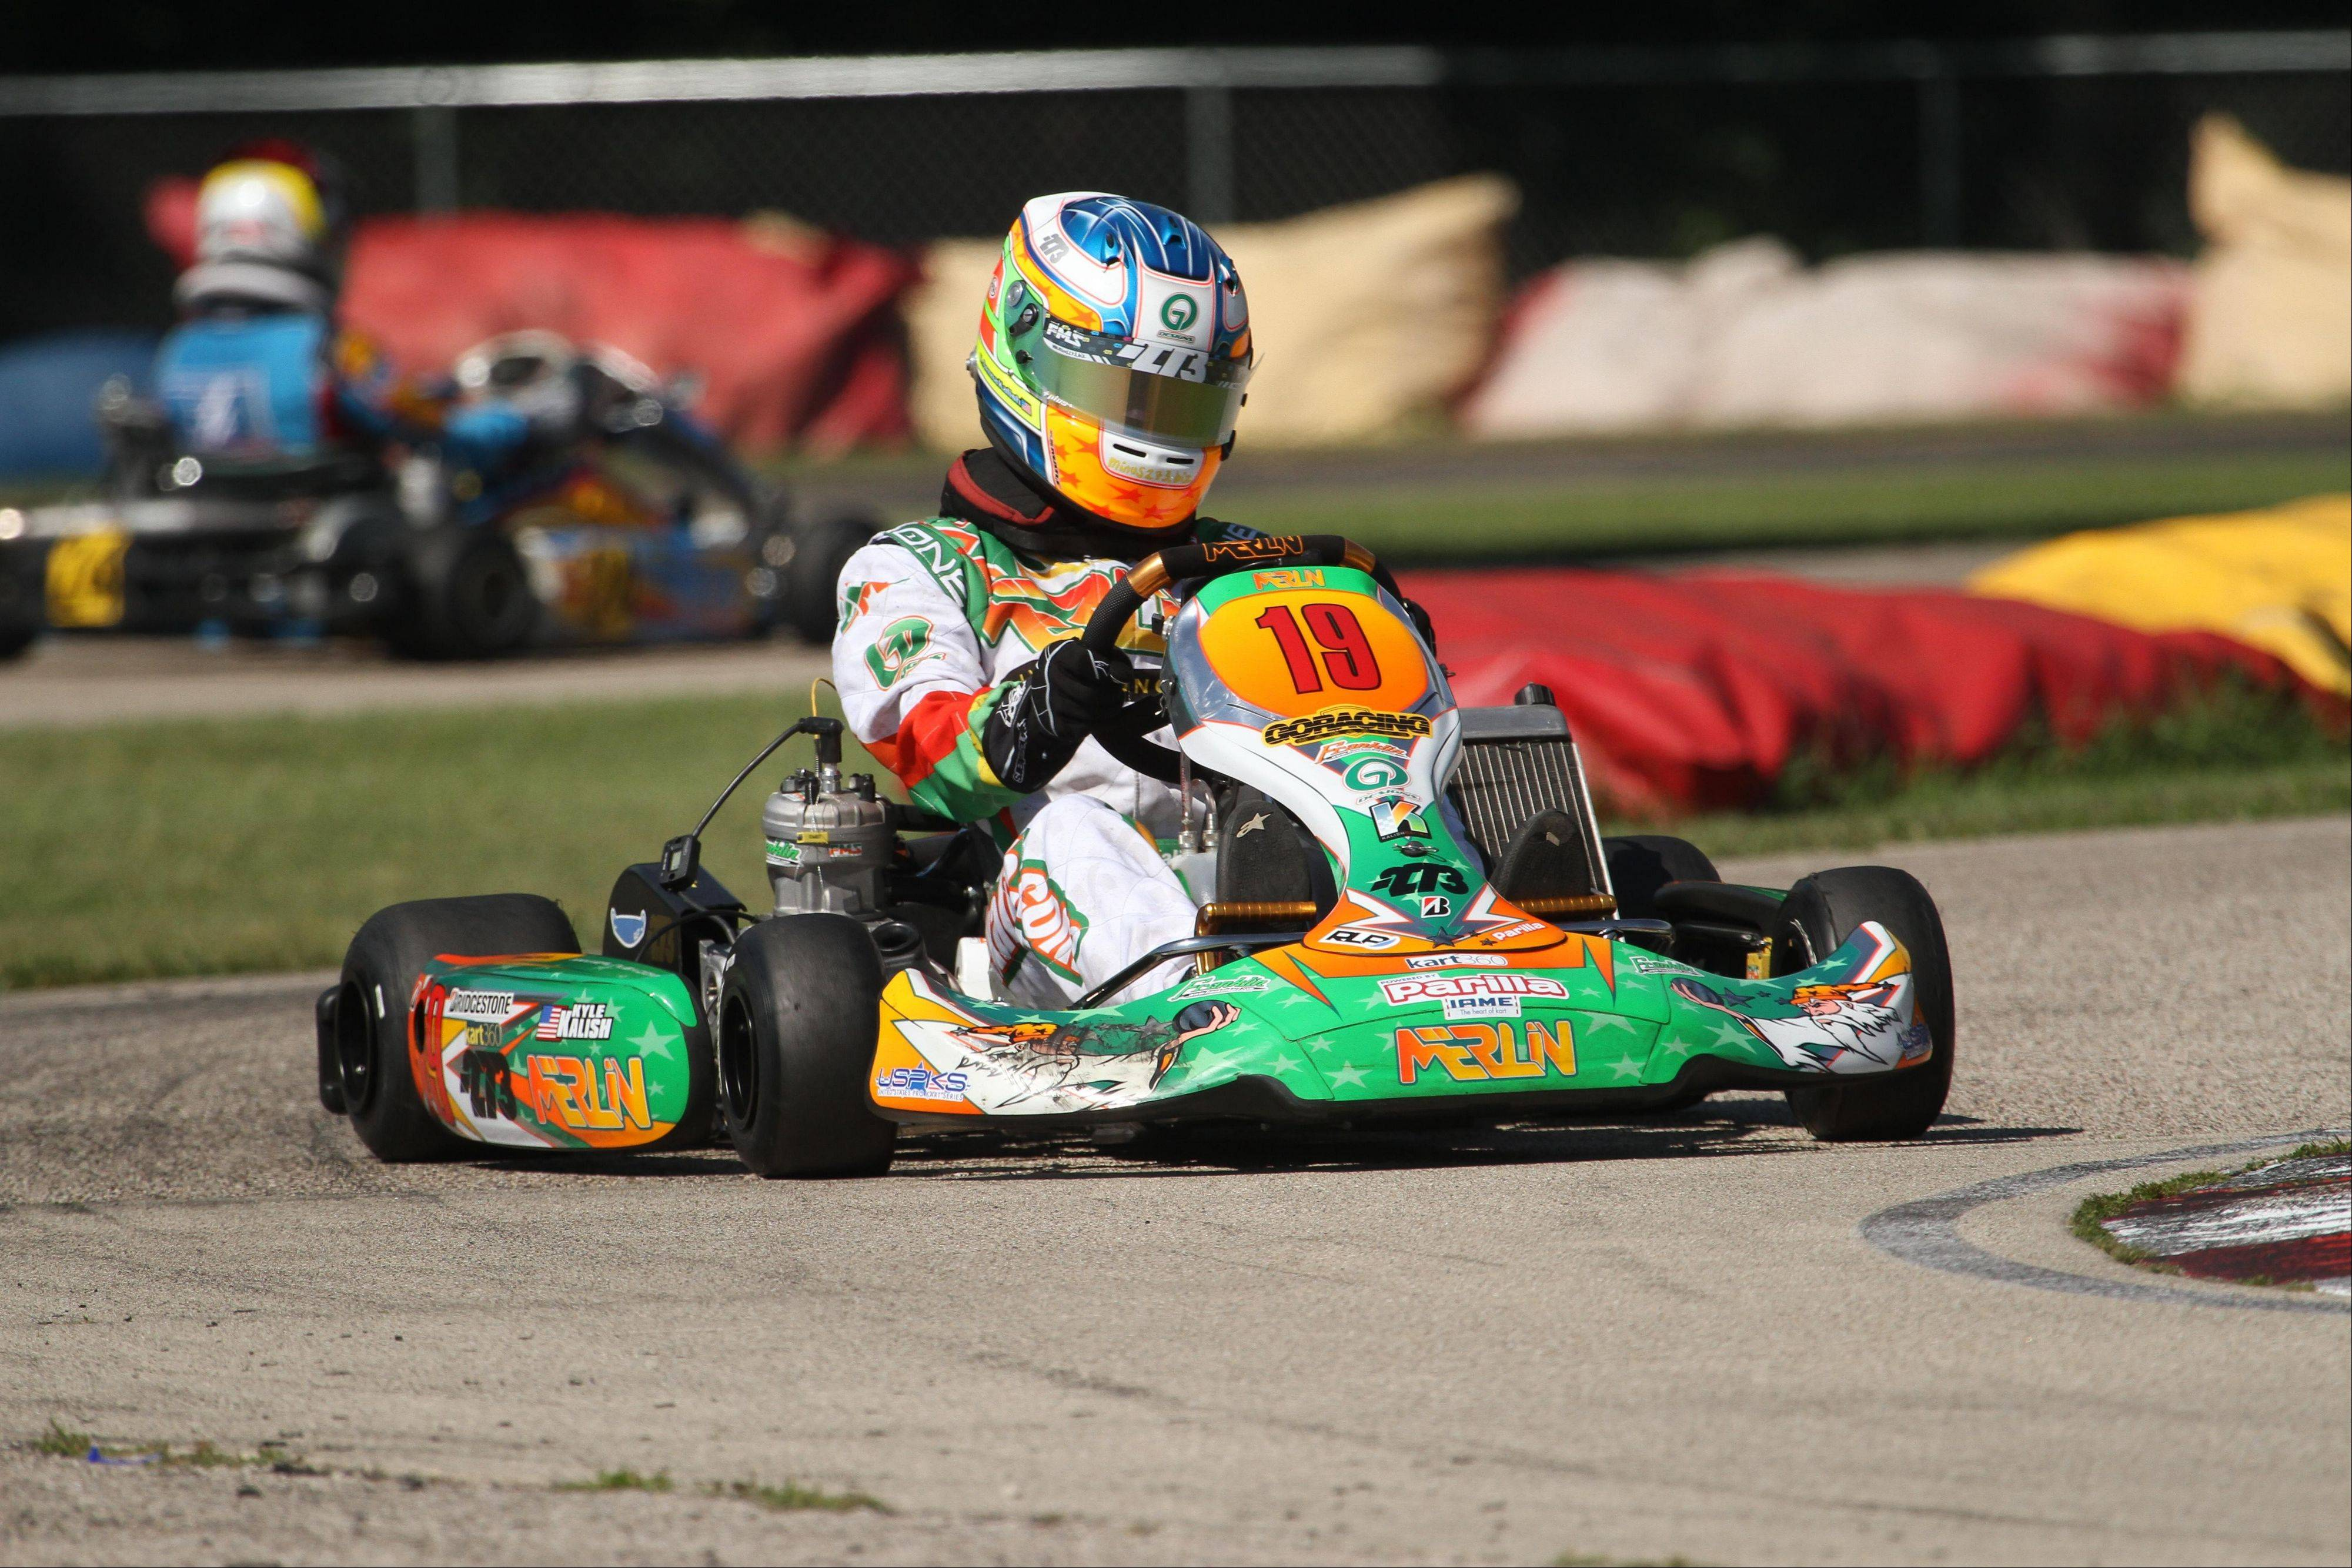 Kyle Kalish of Wauconda is a four-time national champion go-kart racer. The Mundelein High School junior's dream is to be a professional race car driver.